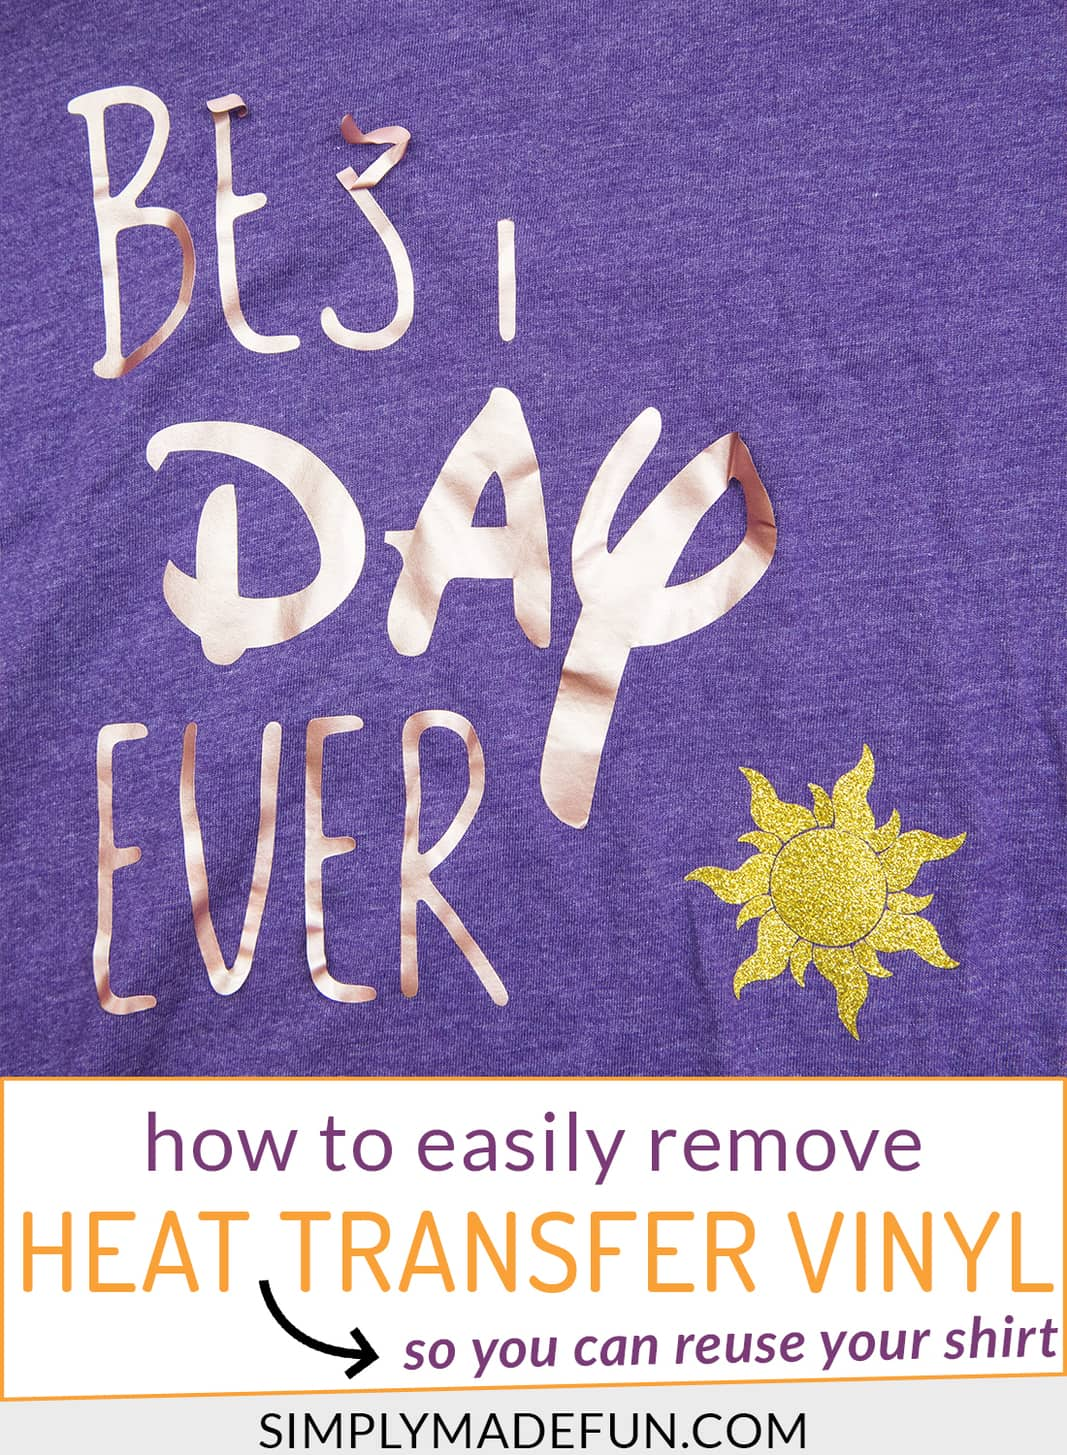 Remove heat transfer vinyl with Letting Removing Solvent Pinterest Image